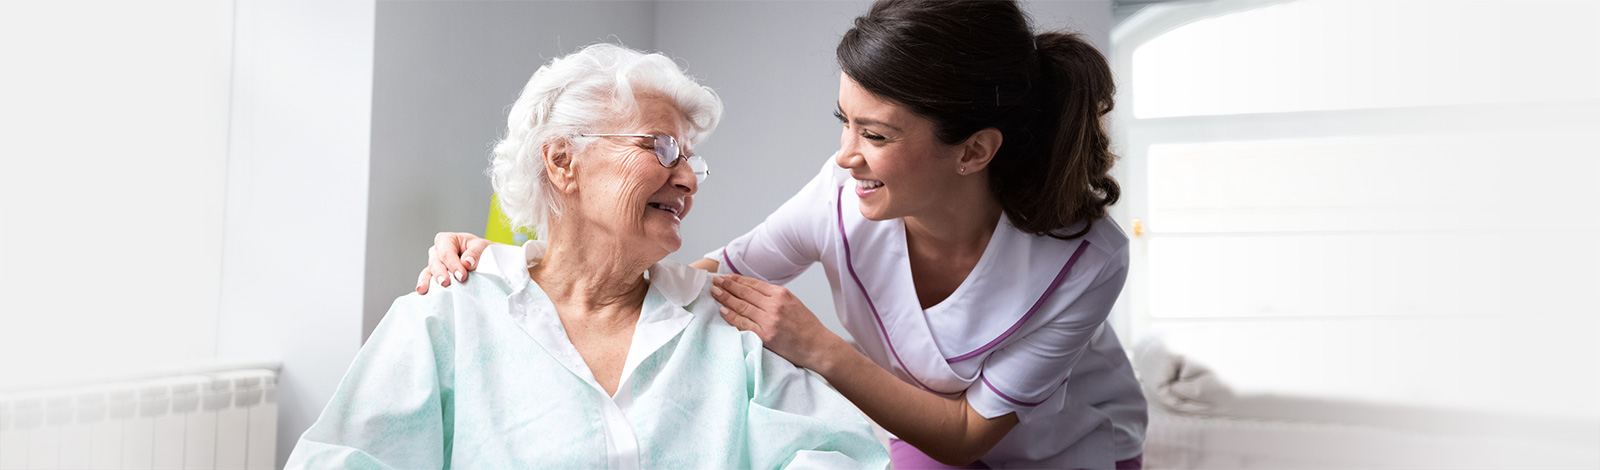 A nurse leaning in to talk to a patient with a big smile on her face.